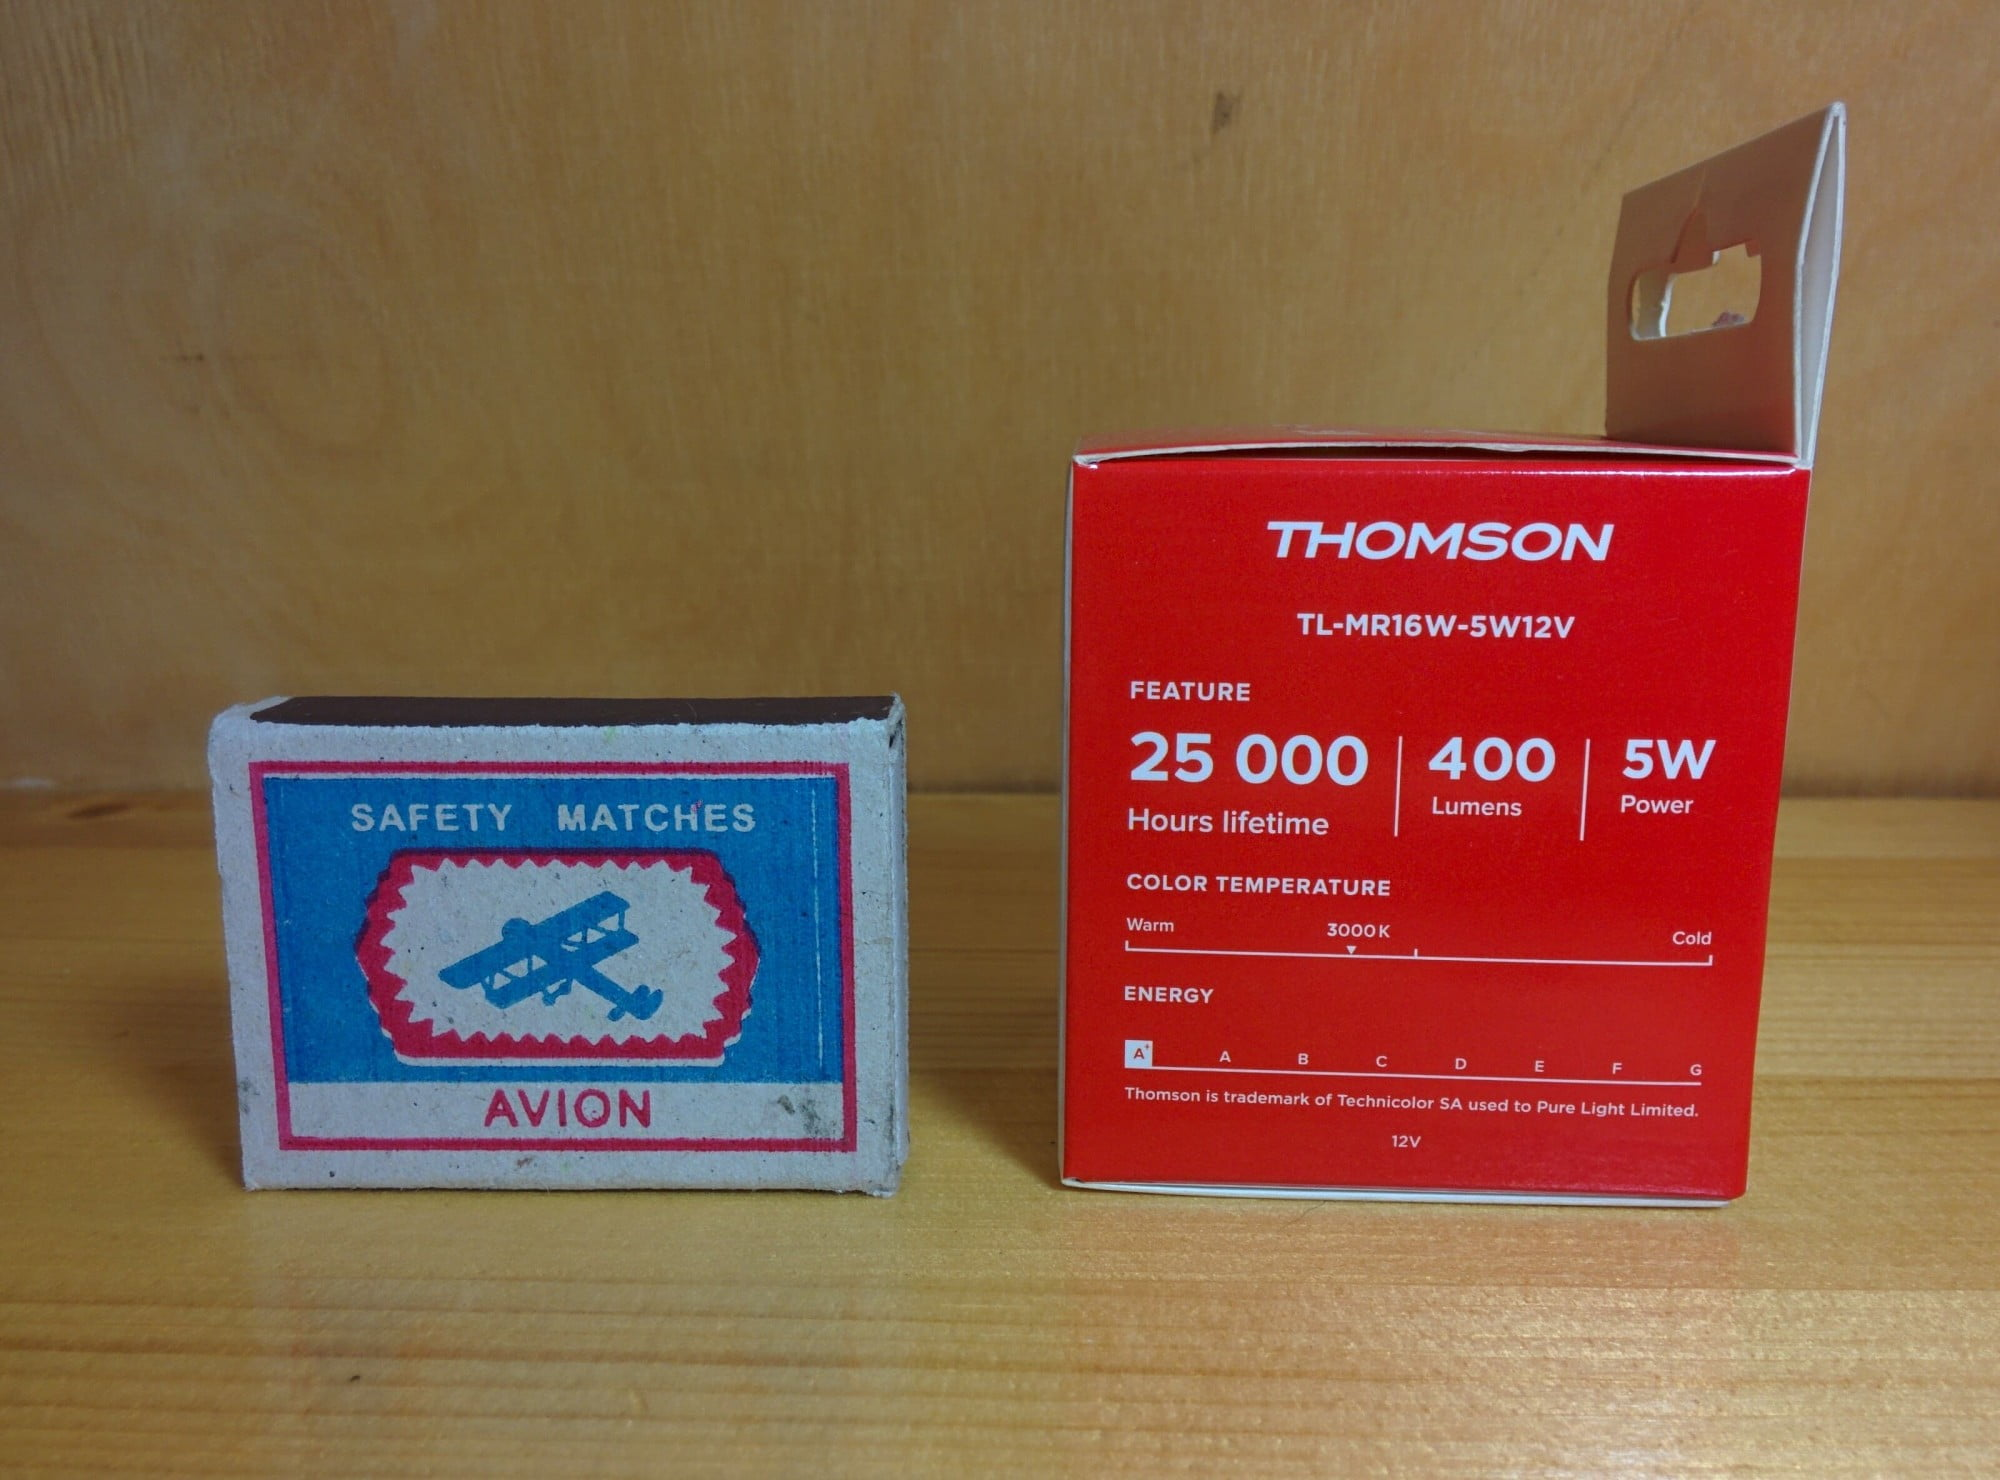 Thomson TL-MR16W-5W12V характеристики